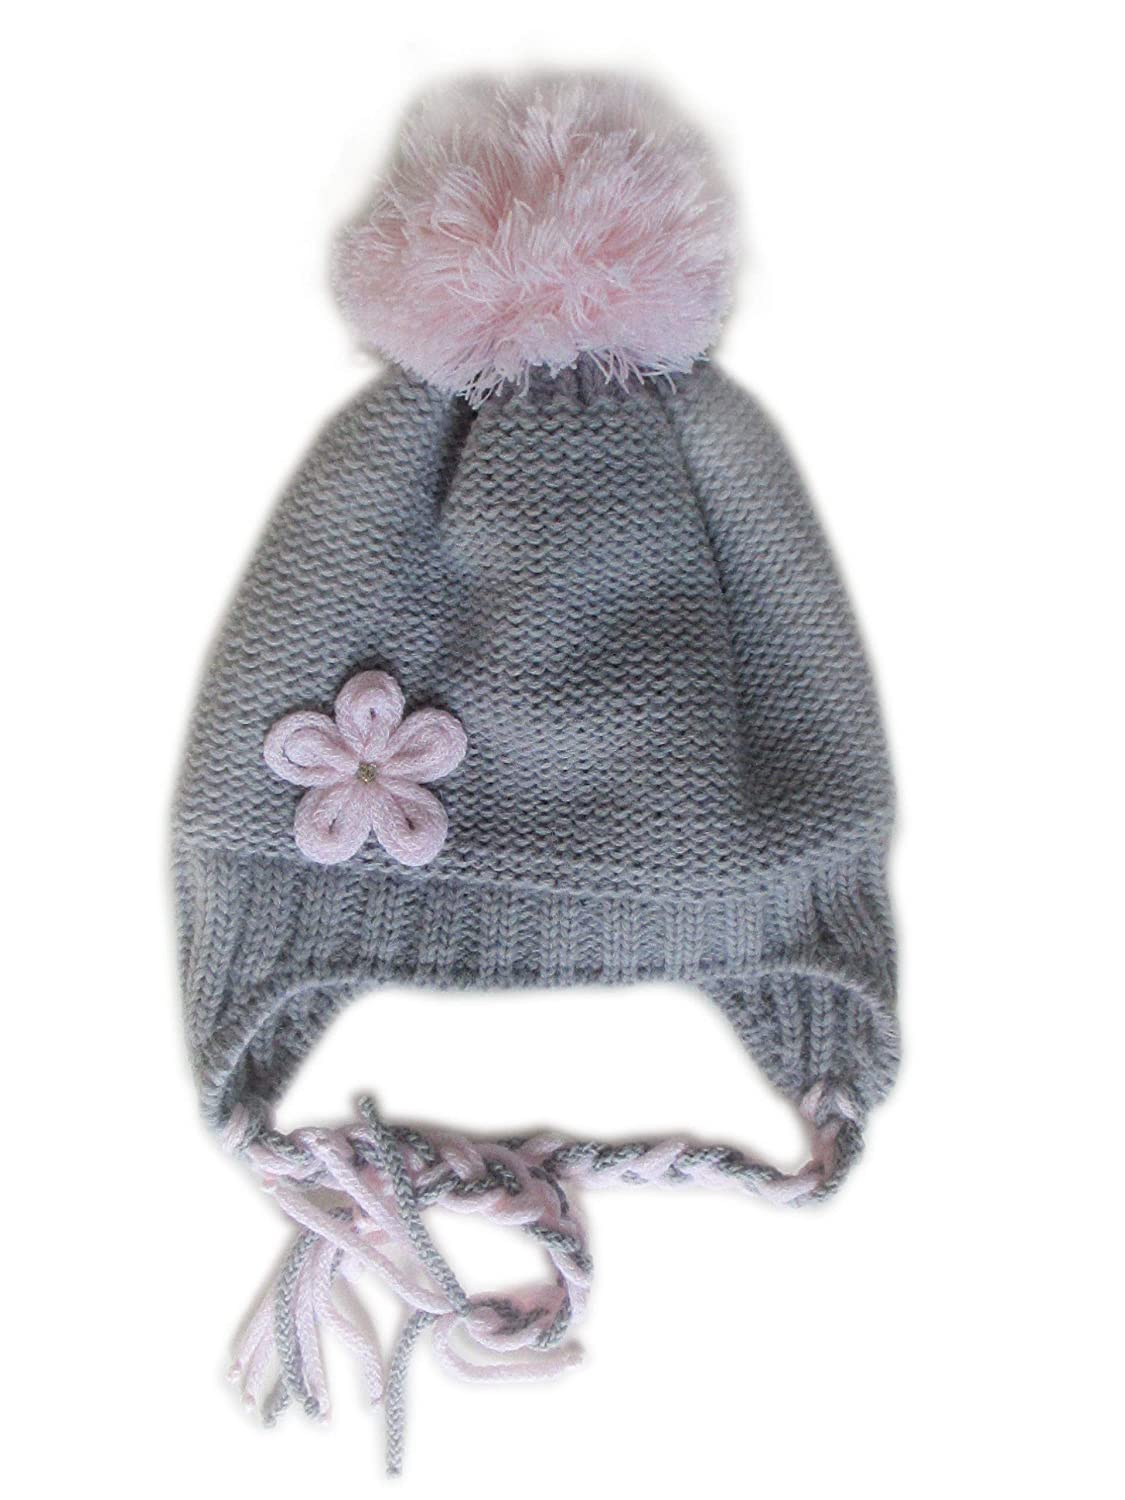 7260c513c90 Amazon.com  Frost Hats Winter Hat for Girls Warm Winter Beanie Ski Hat Pom  Pom Beanie (Grey)  Clothing